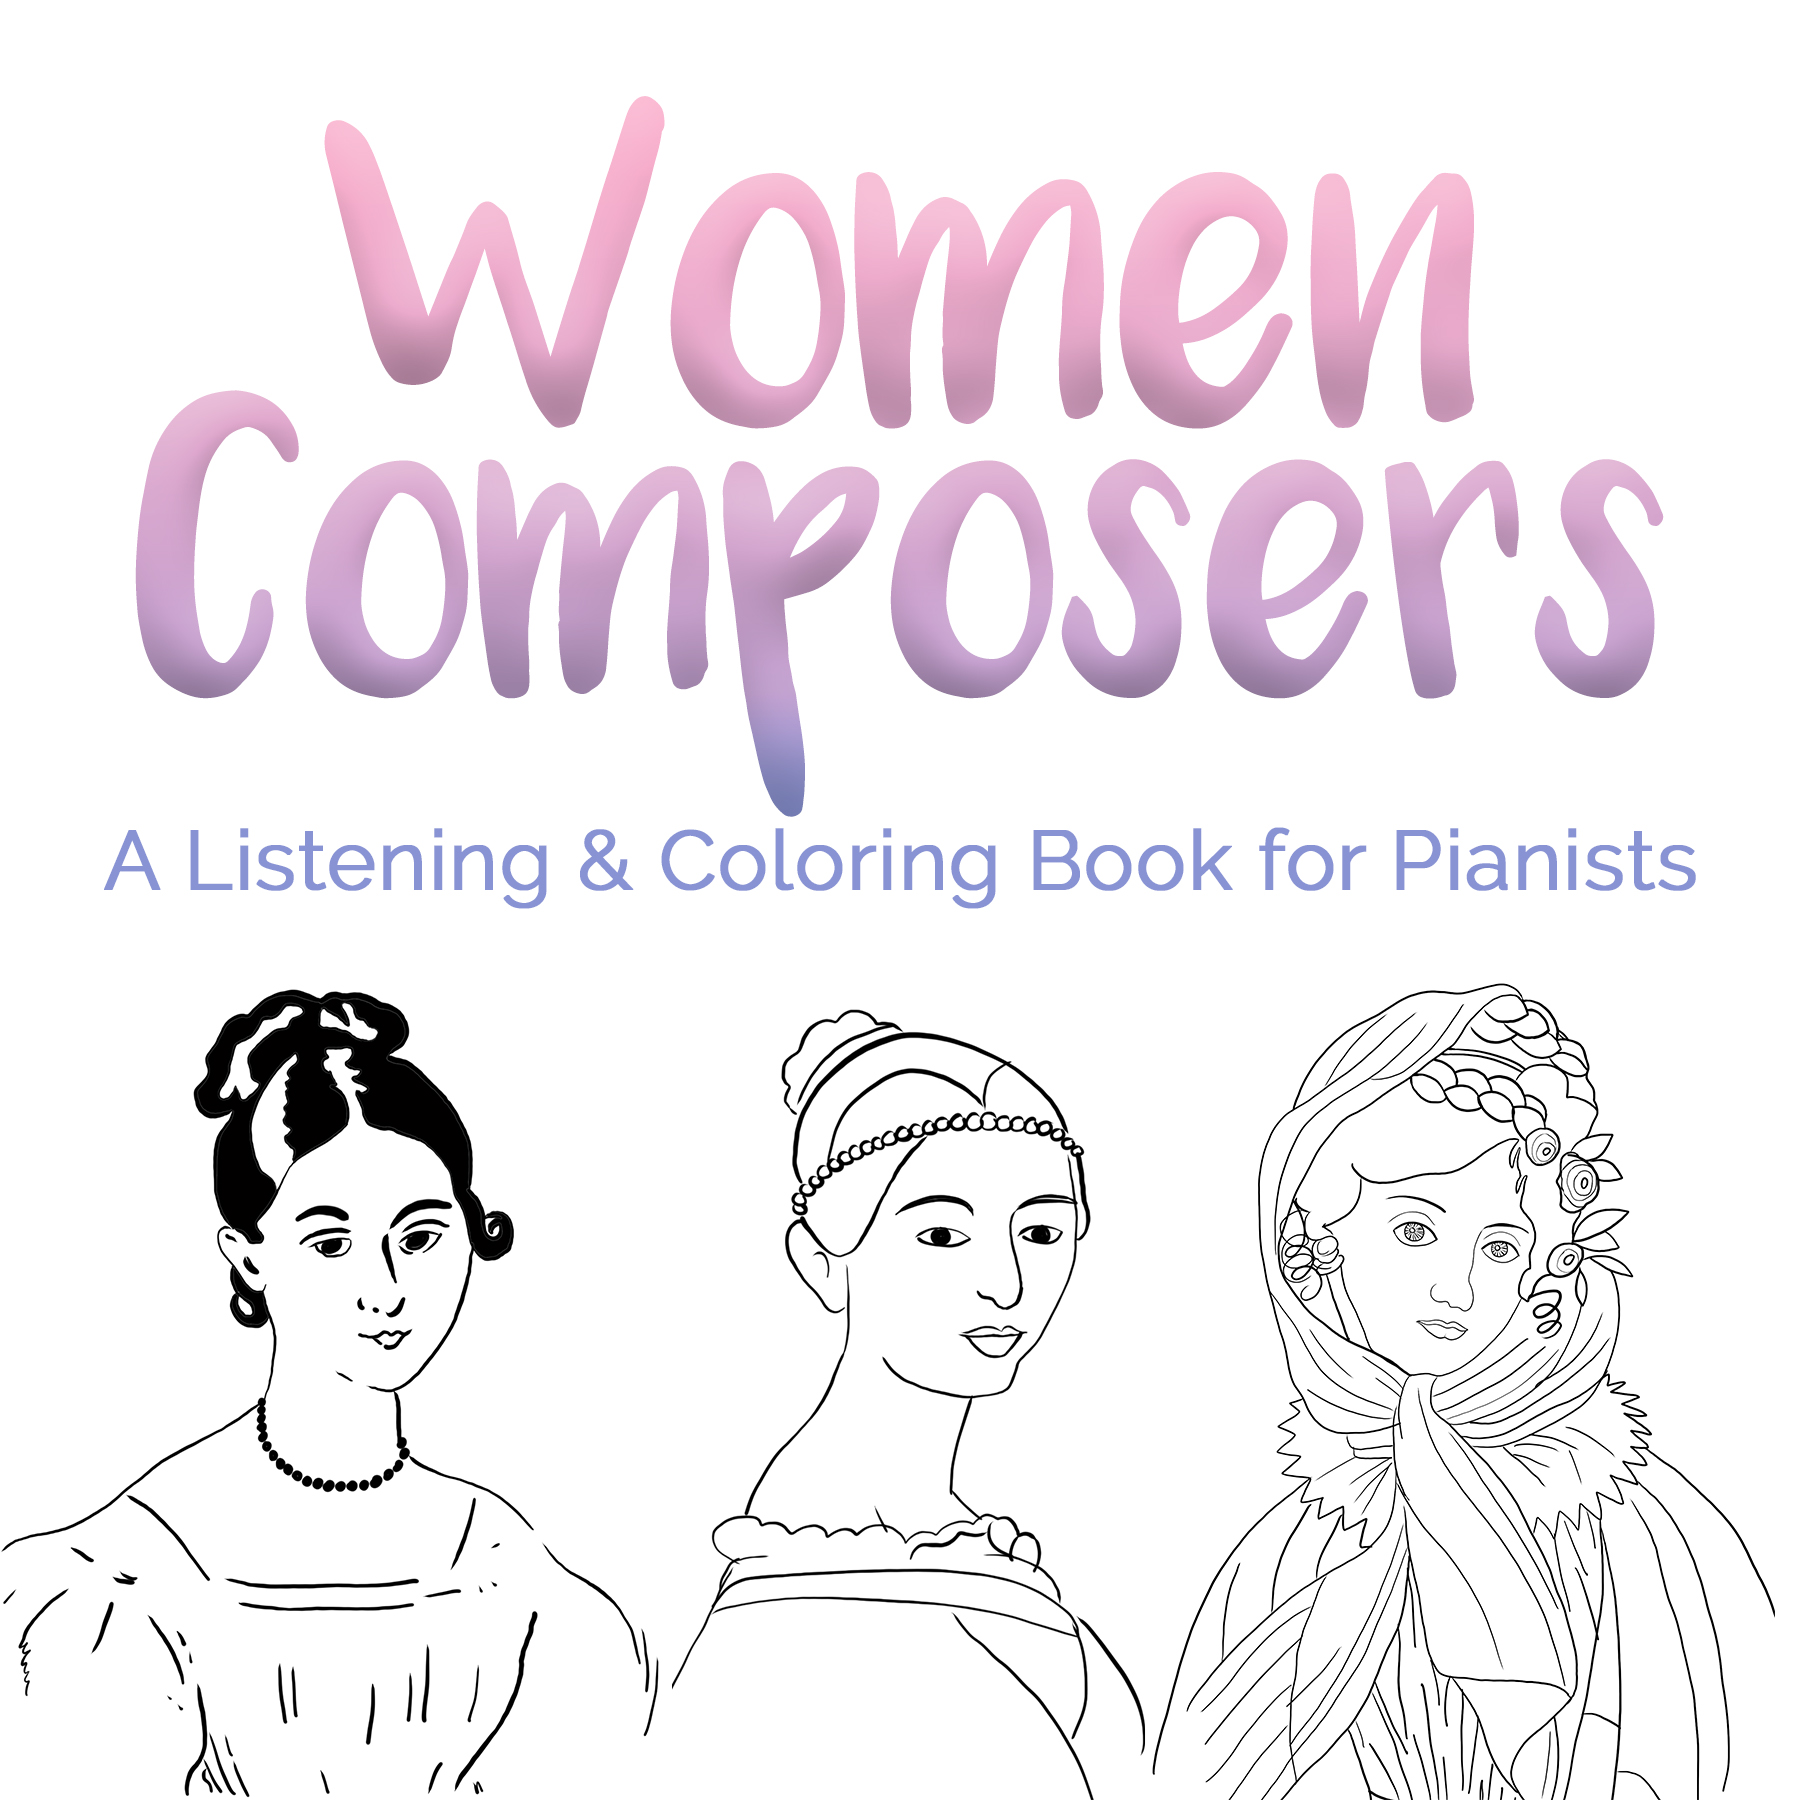 Shades of Sound Listening & Coloring Book: Women Composers